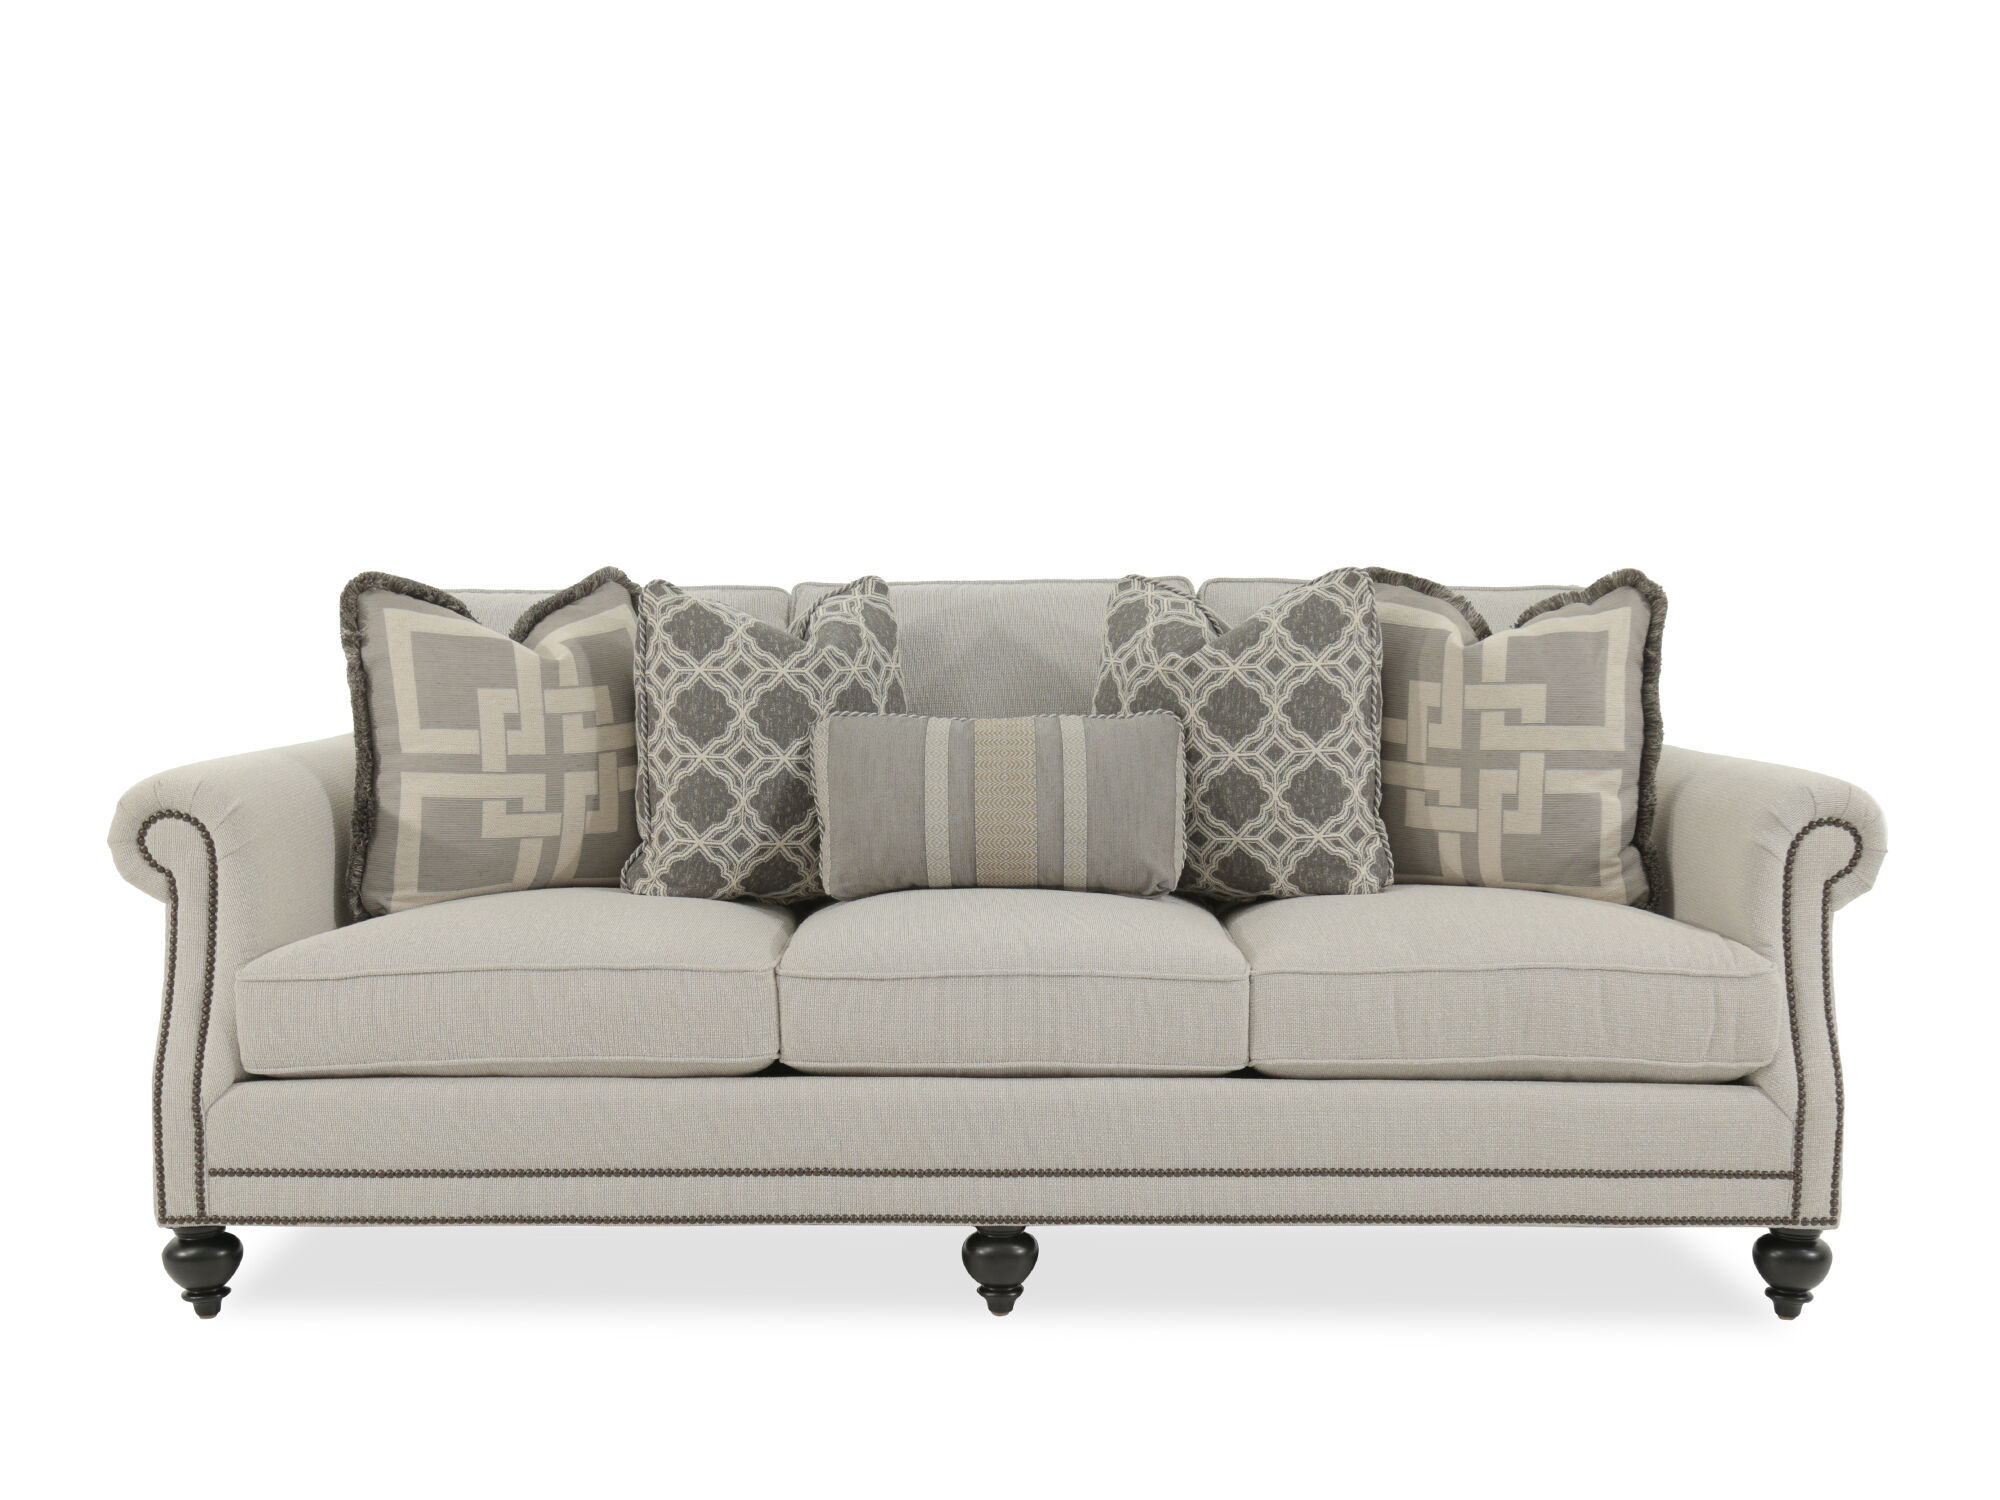 Images Nailhead Accented 92.5u0026quot; Rolled Arm Sofa In Gray  Nailhead Accented 92.5u0026quot; Rolled Arm Sofa In Gray